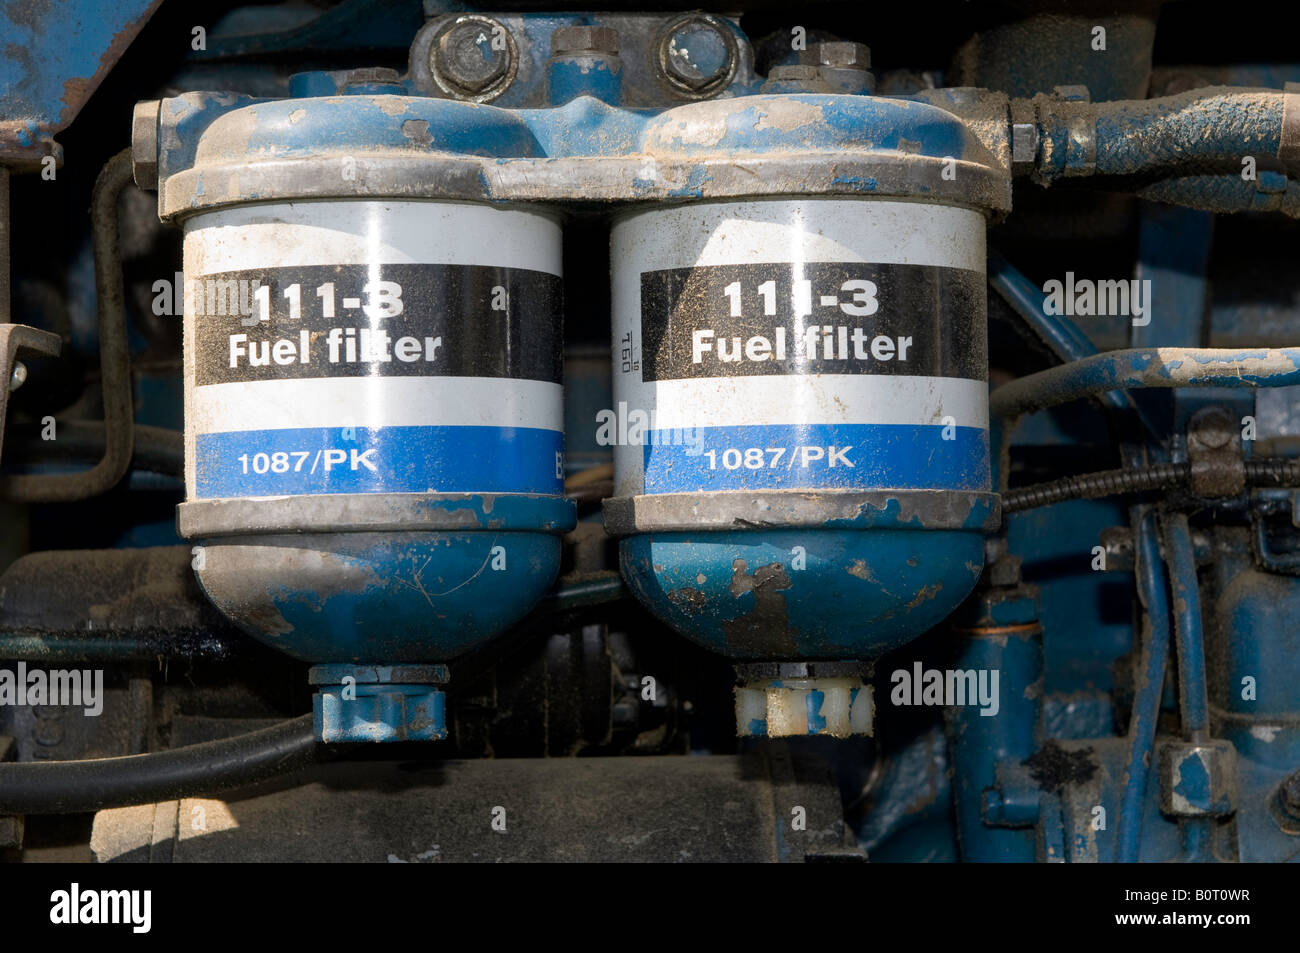 hight resolution of diesel fuel filter stock photos u0026 diesel fuel filter stock imagesfuel filters on a ford